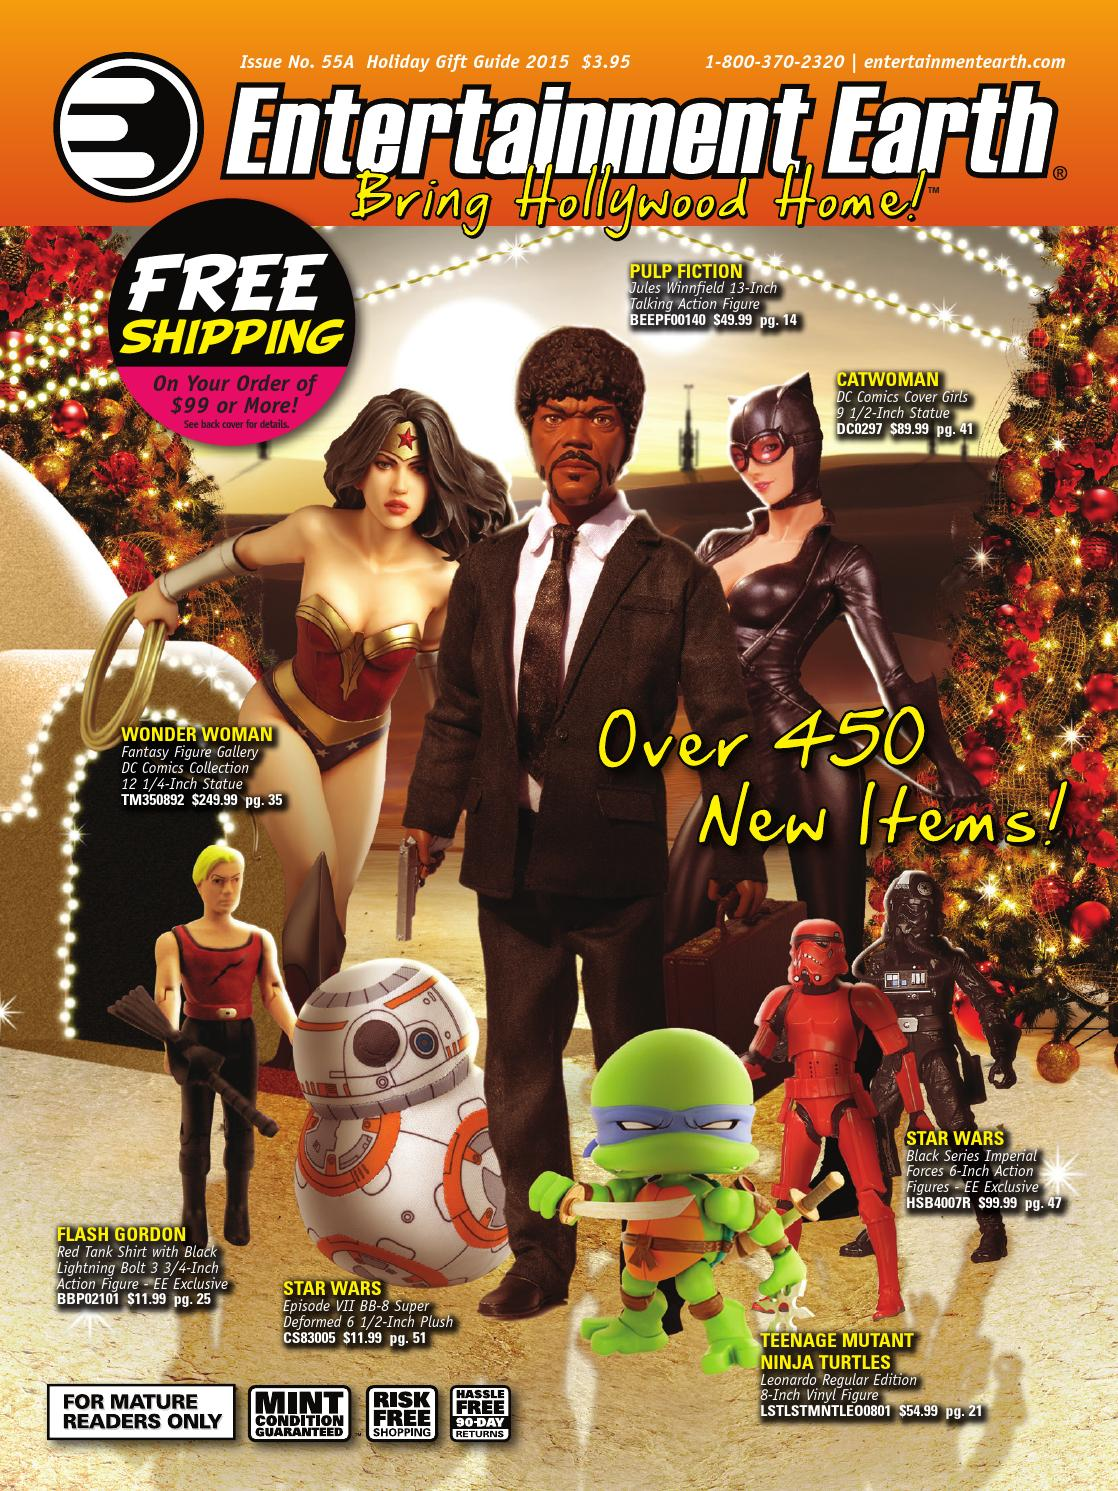 403d51d305160 Entertainment Earth Holiday Gift Guide 2015 Catalog by Entertainment Earth  - issuu